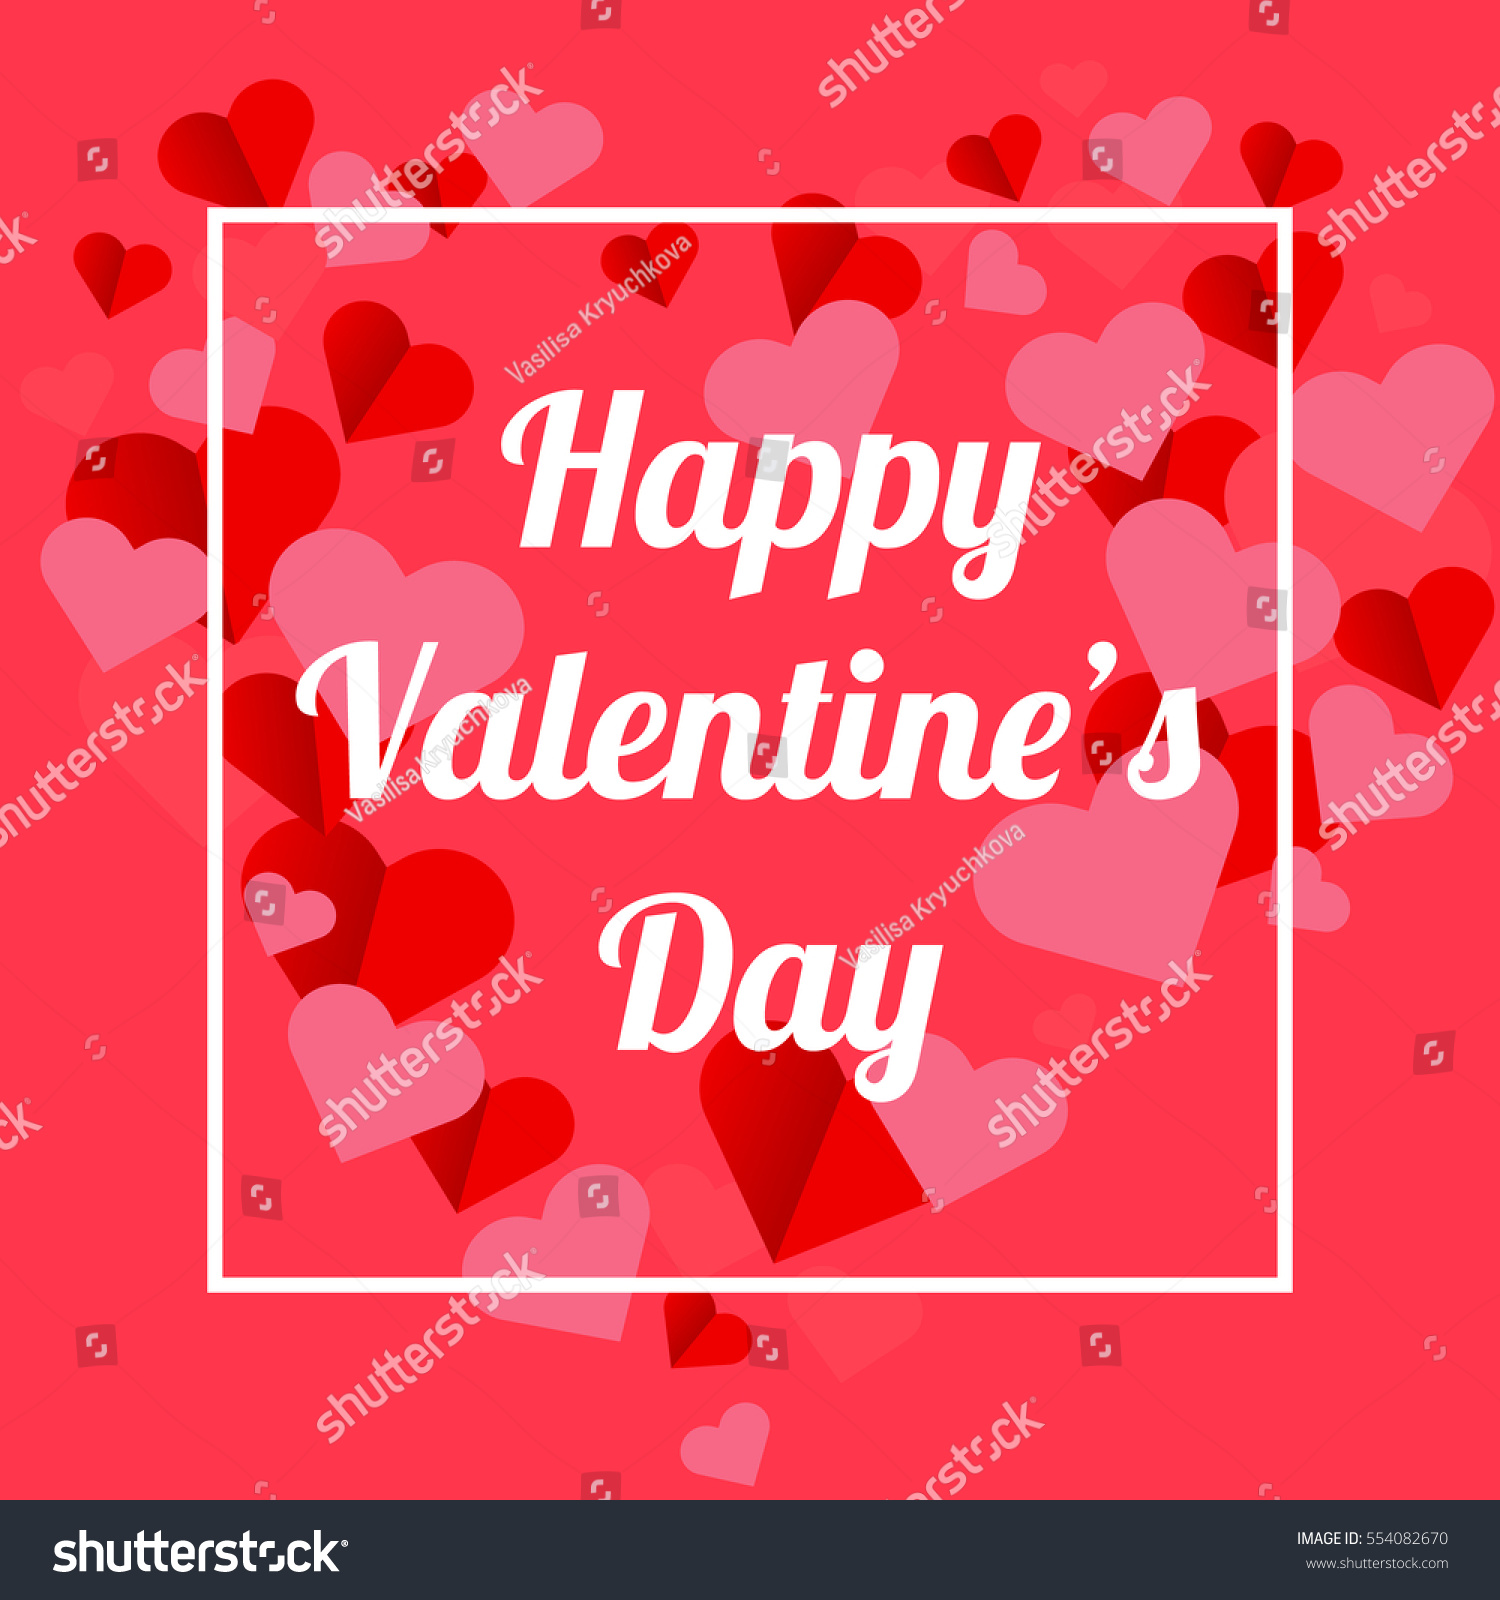 Happy valentines day greeting card valentine stock vector happy valentines day greeting card the valentine day on a pink background with red hearts kristyandbryce Image collections